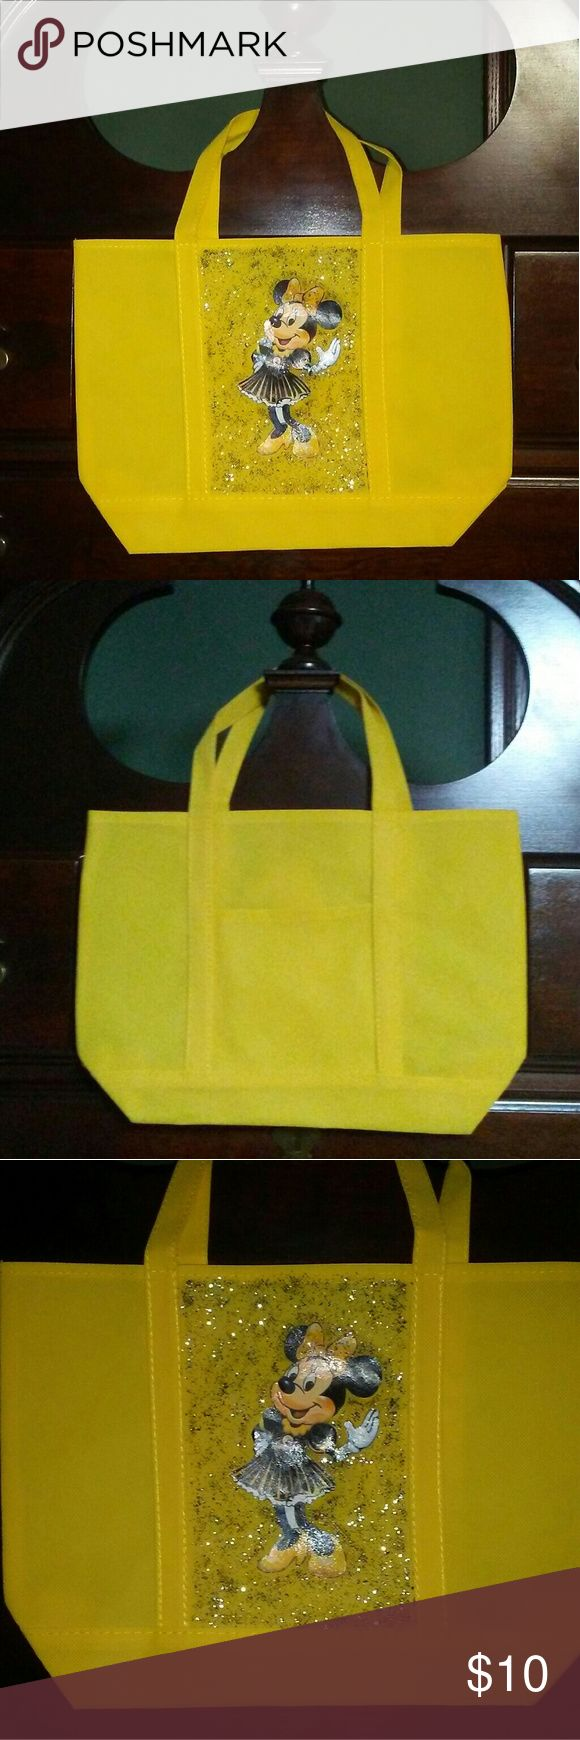 """Pittsburgh Steelers Minnie Mouse Tote Yellow tote with Minnie Mouse as a Pittsburgh Steelers cheerleader. Measures 14"""" x 3"""" x 10"""". Strap drop is approximately 7.5"""". Bags Totes"""